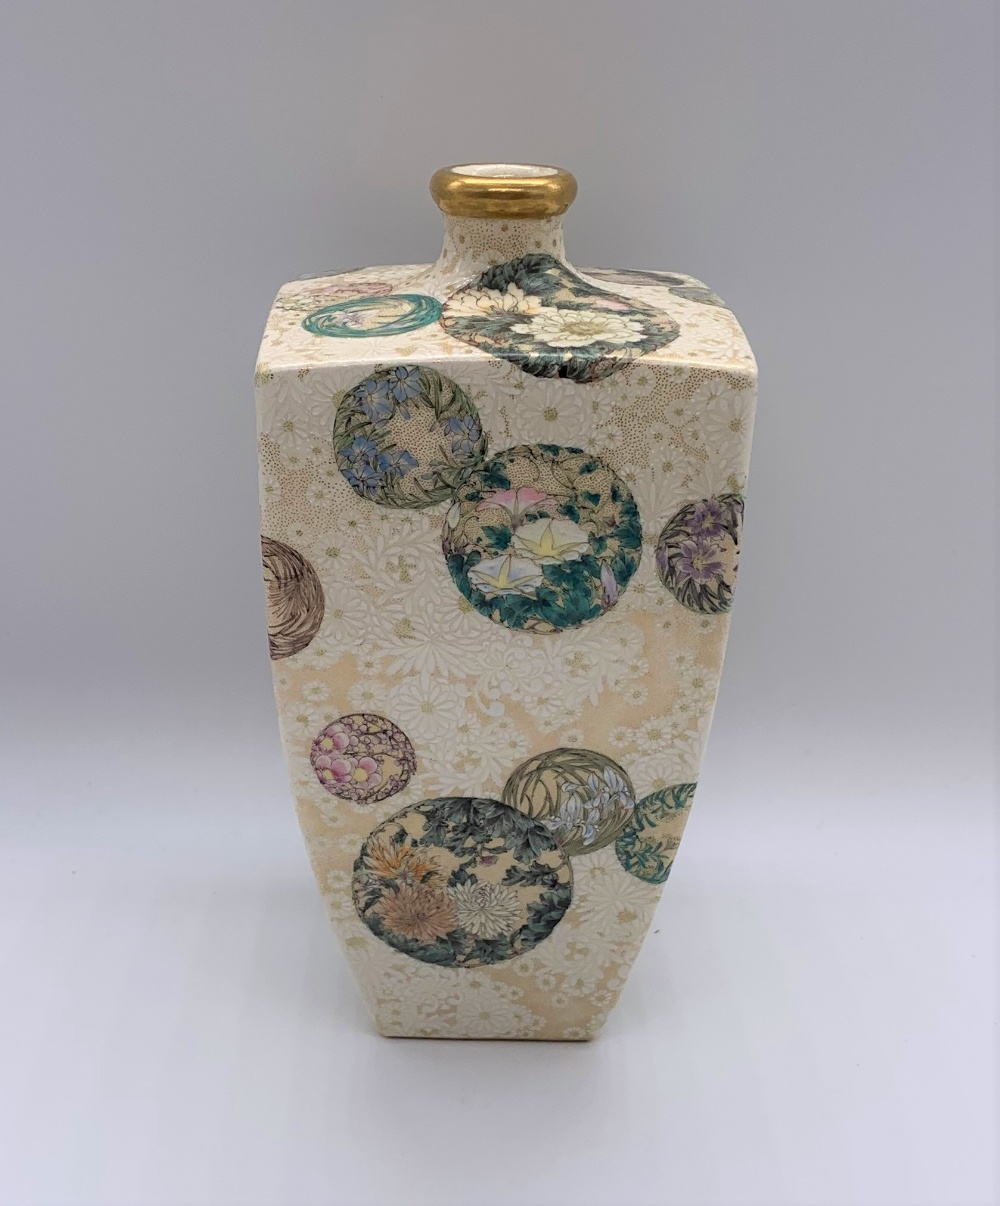 ATTRIBUTED TO KINKOZAN; a Japanese Meiji period Satsuma square sectioned vase decorated with